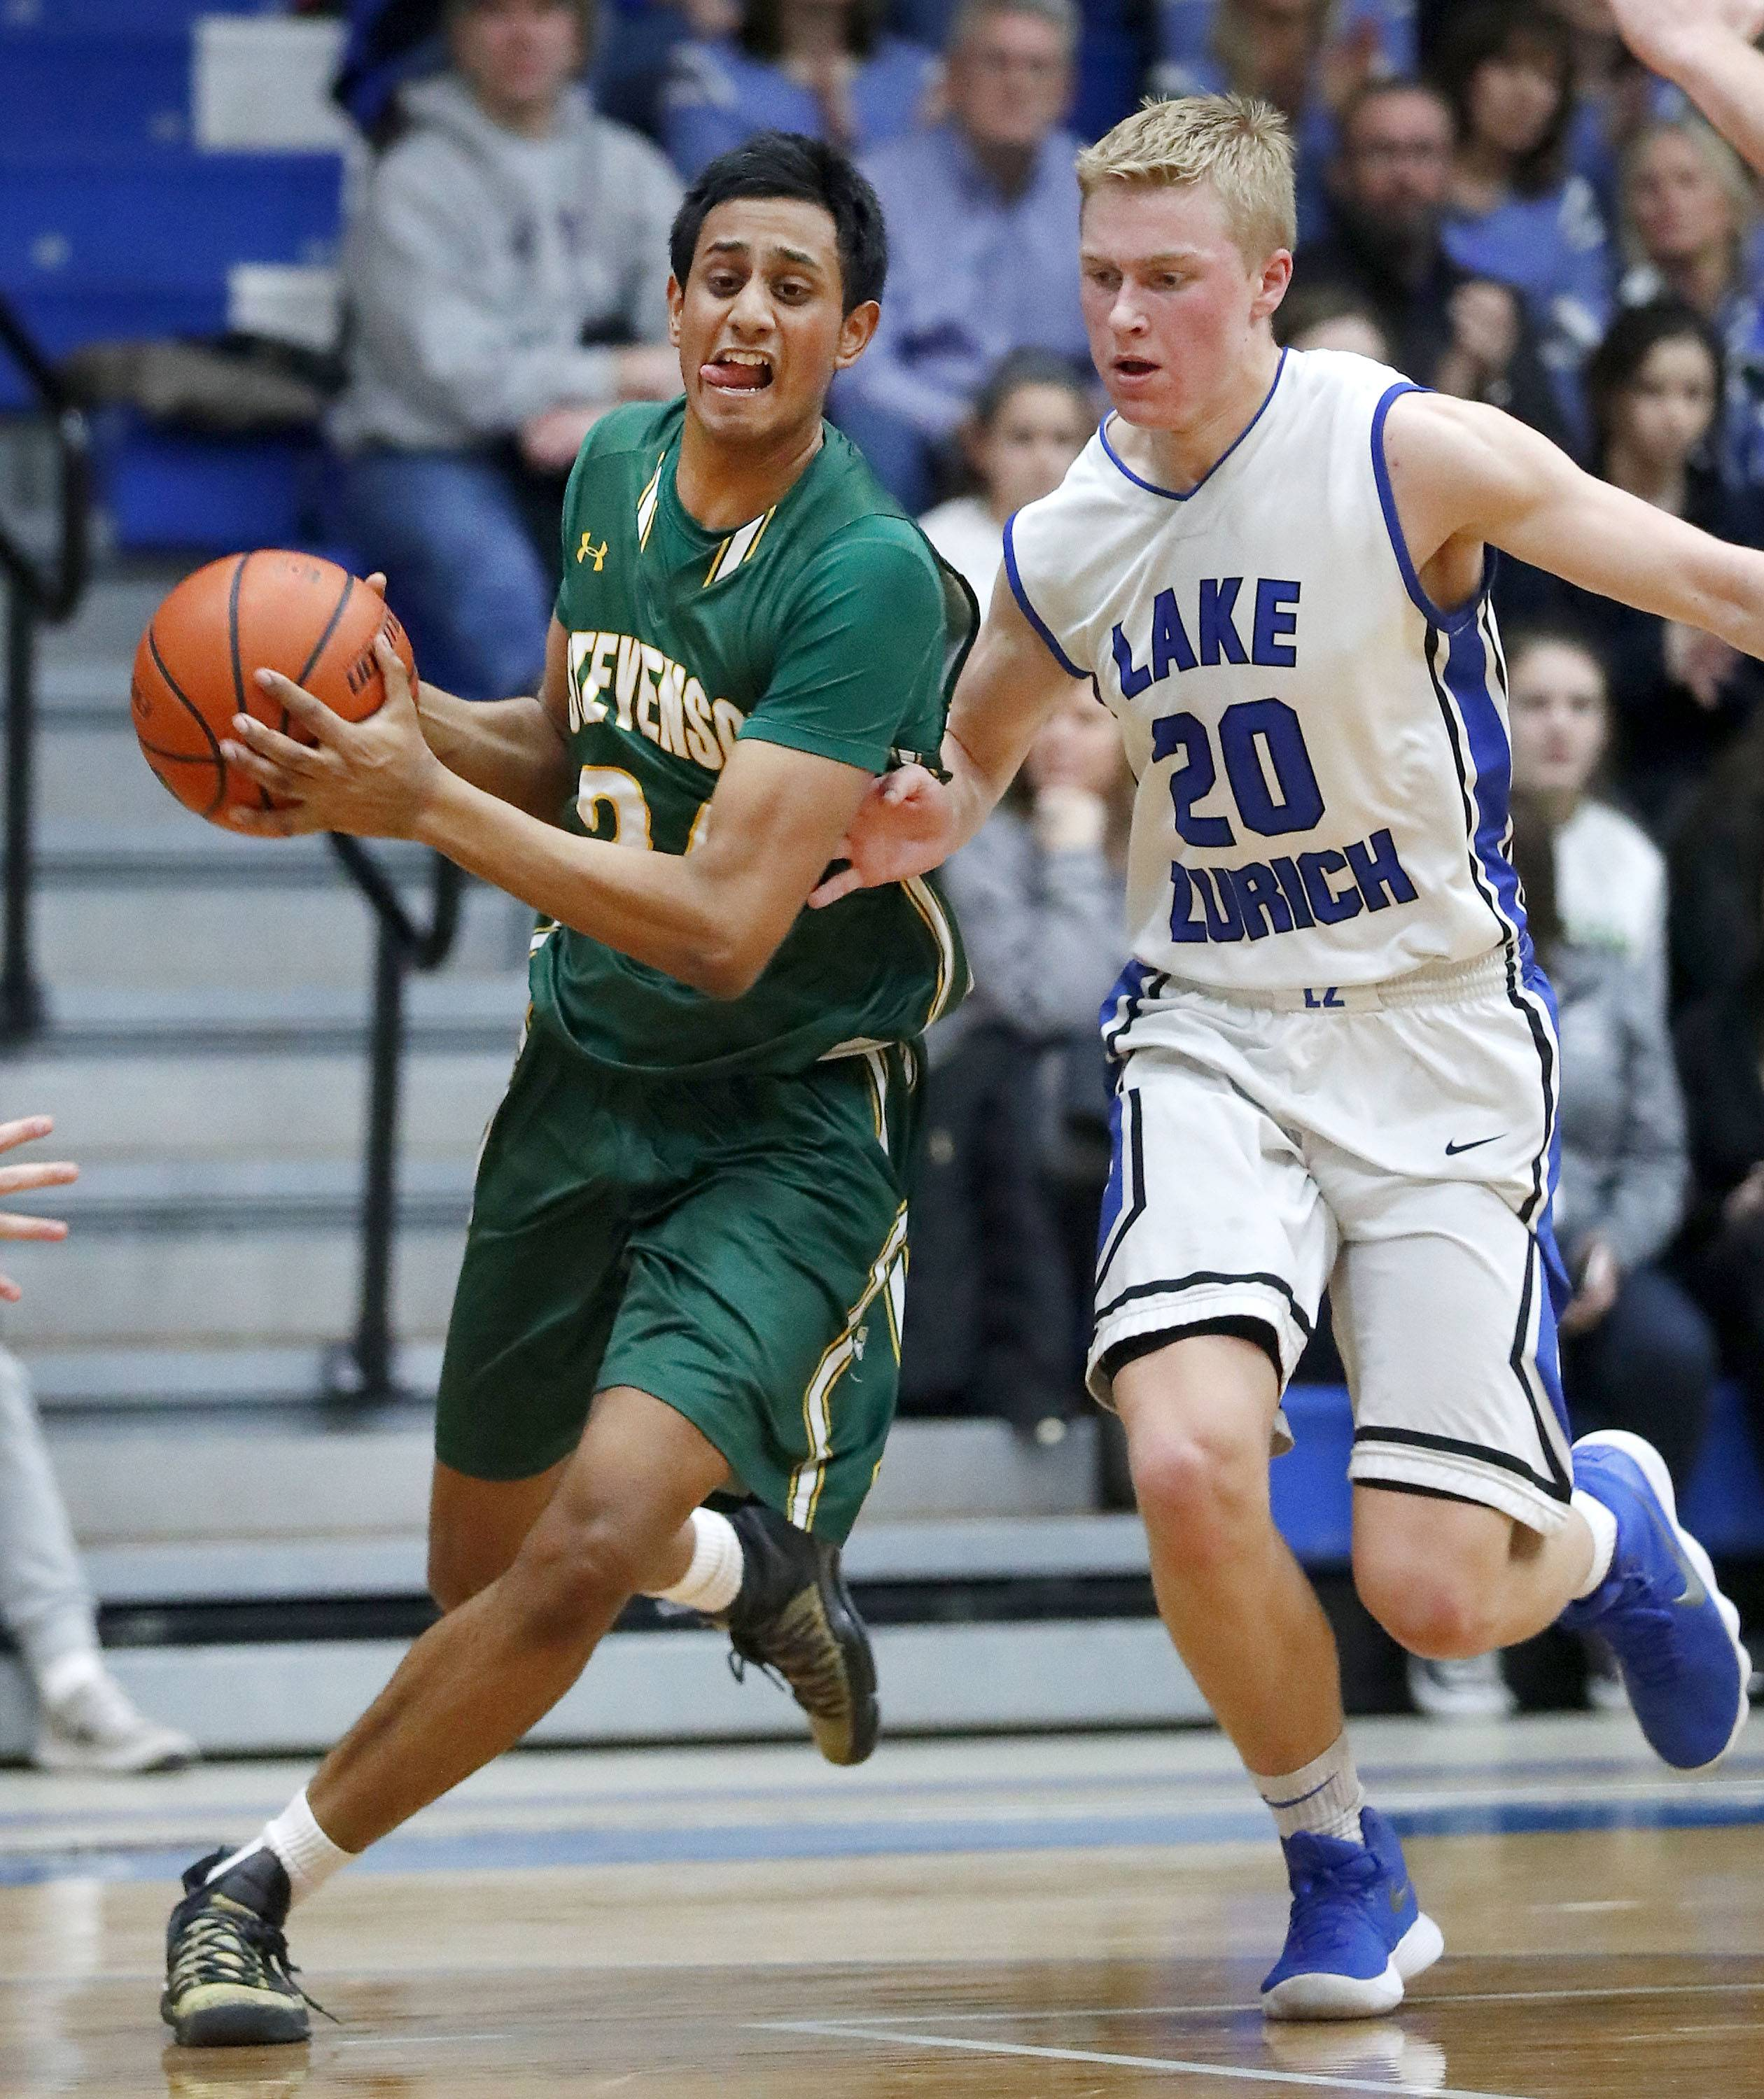 Stevenson's Samvit Ram, left, drives on Lake Zurich's Joe Heffernan on Tuesday night at Lake Zurich.